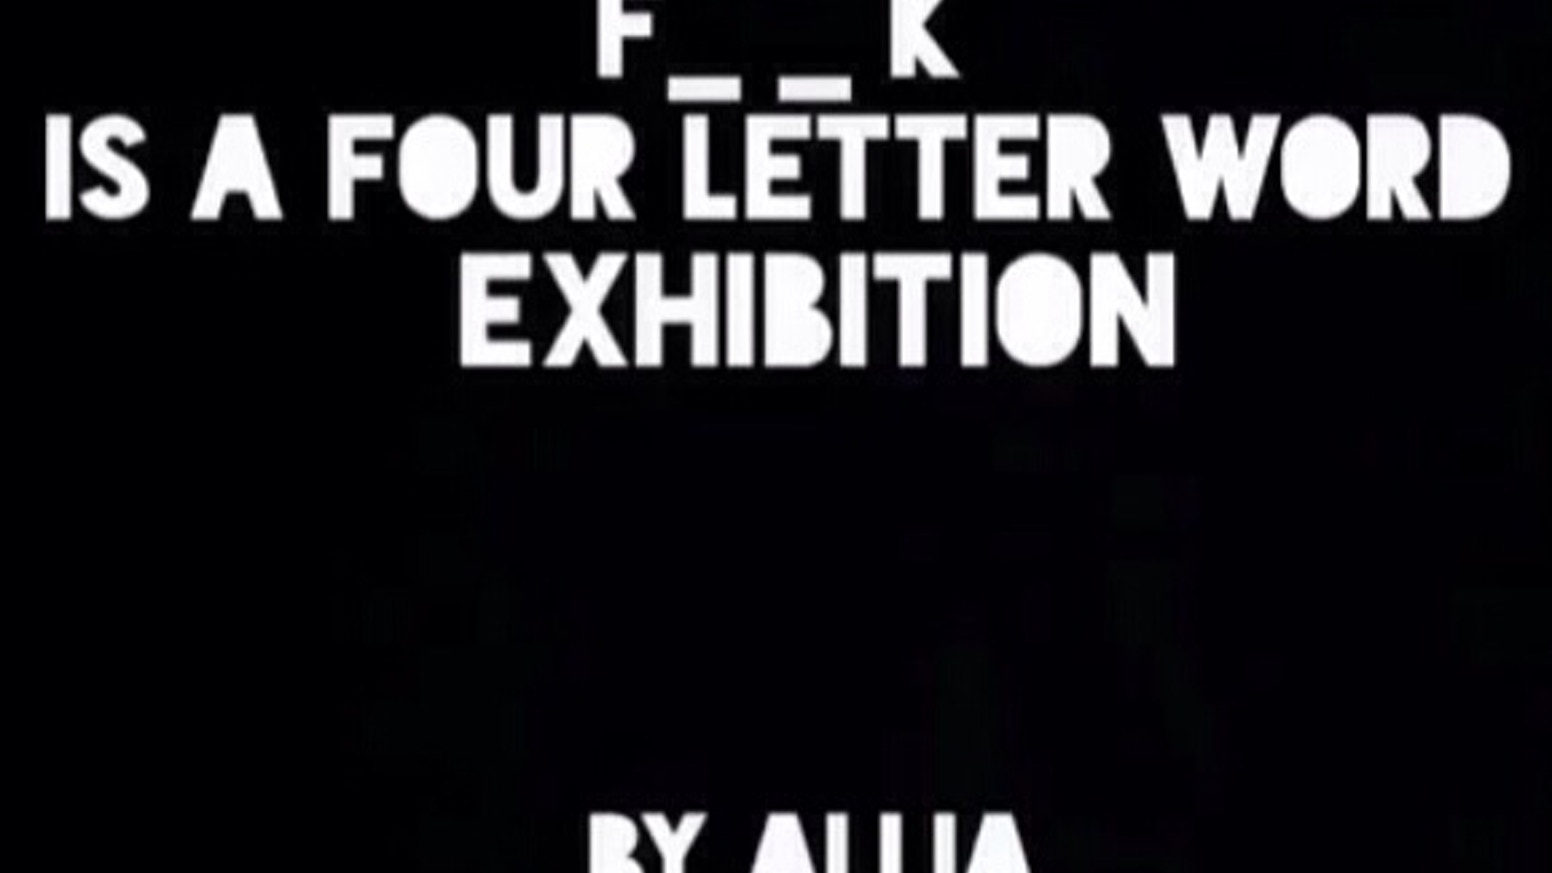 Fk Is A Four Letter Word Exhibition By Allia By Erica Allia